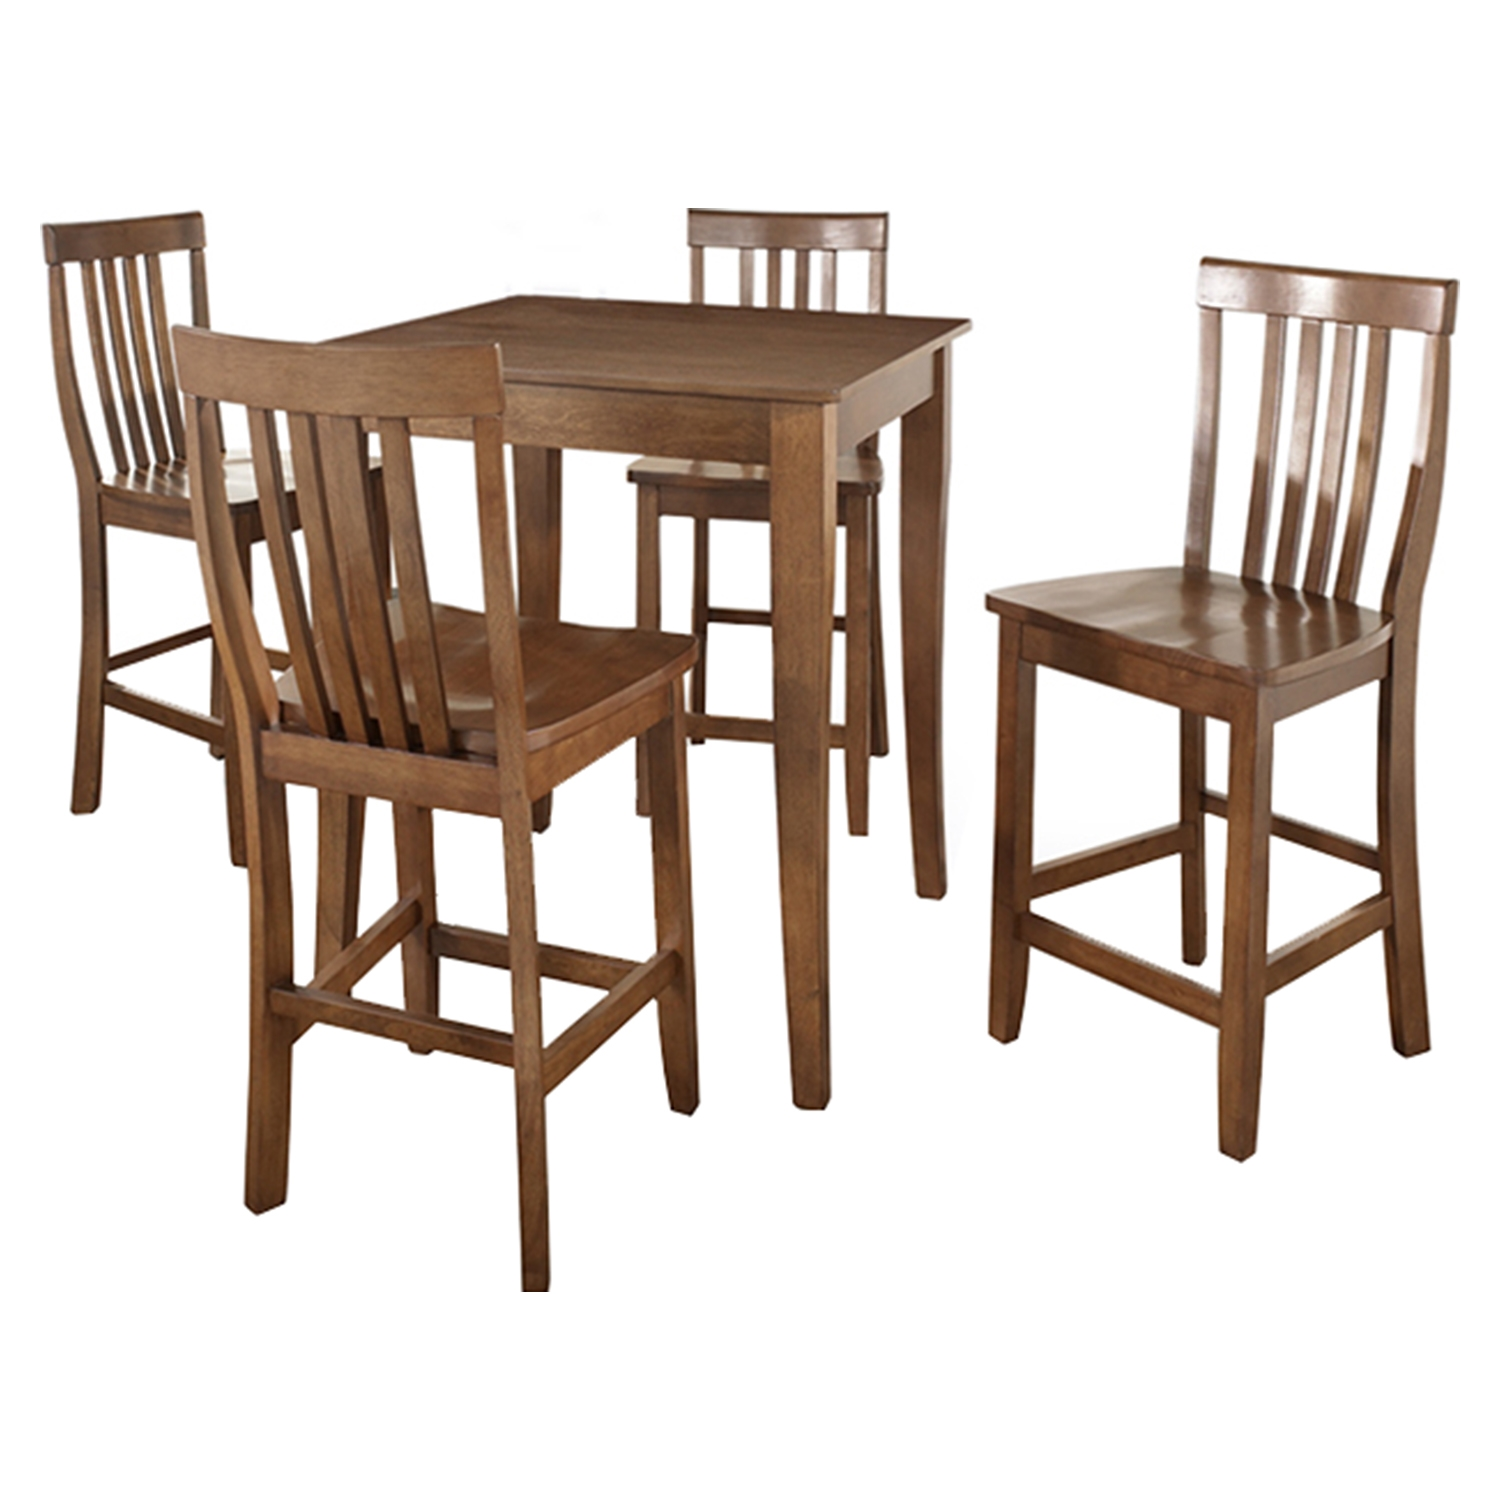 5-Piece Pub Dining Set - Cabriole Table Legs, School House Stools, Cherry - CROS-KD520003CH